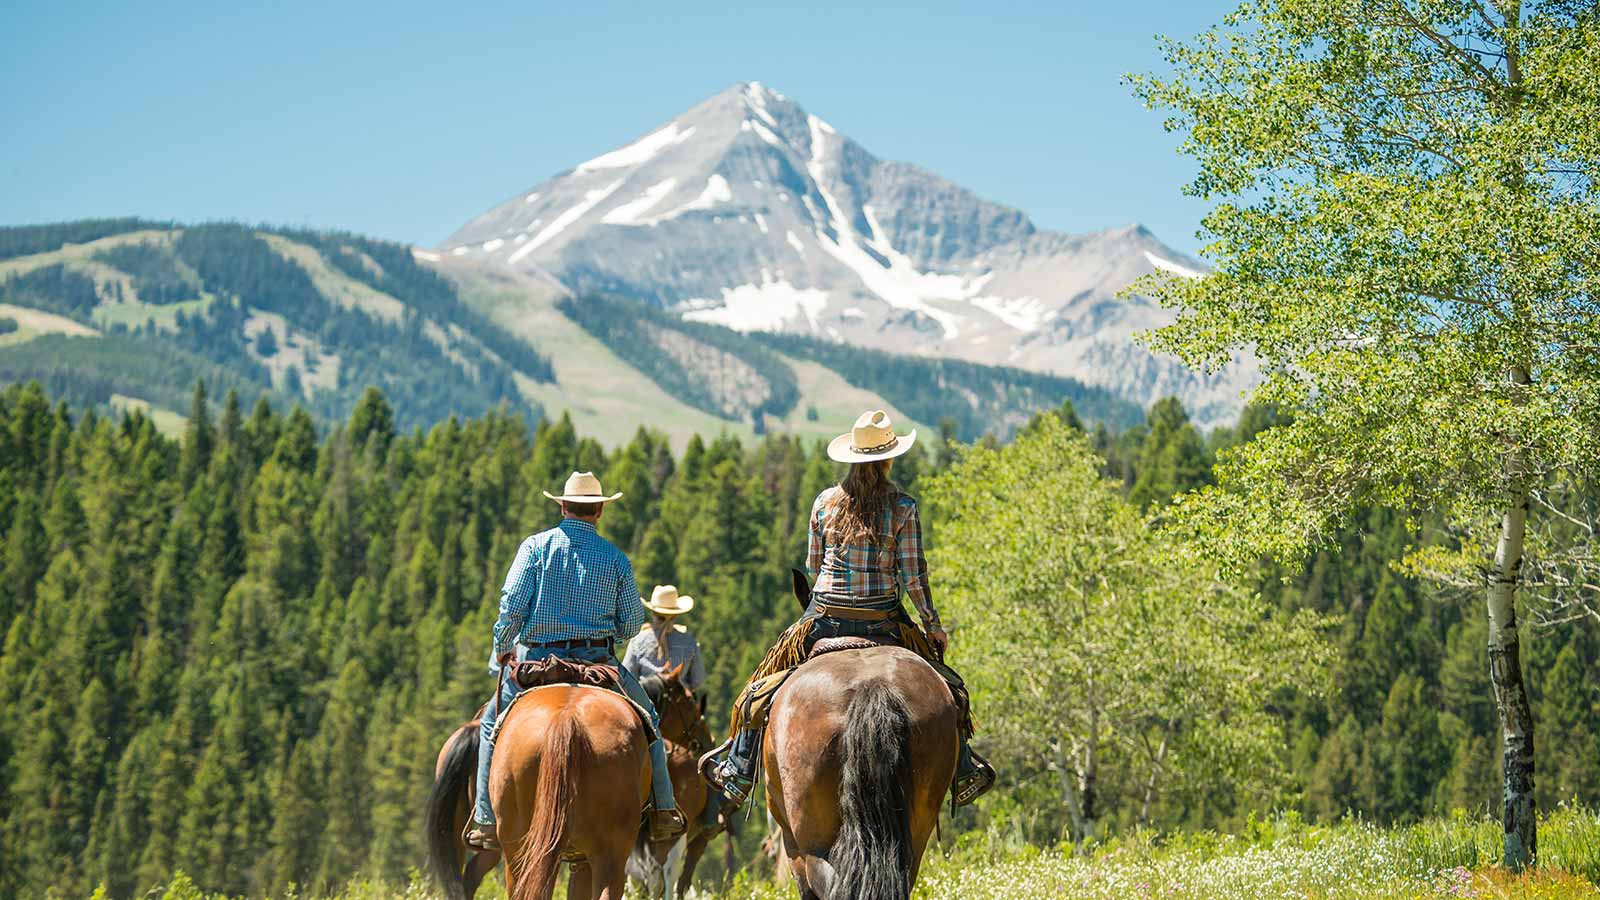 Views include lone mountain and the surrounding gallatin forest. Lone Mountain Ranch Horseback Ride With A View Of Lone Peak In Big Sky Yellowstone National Park